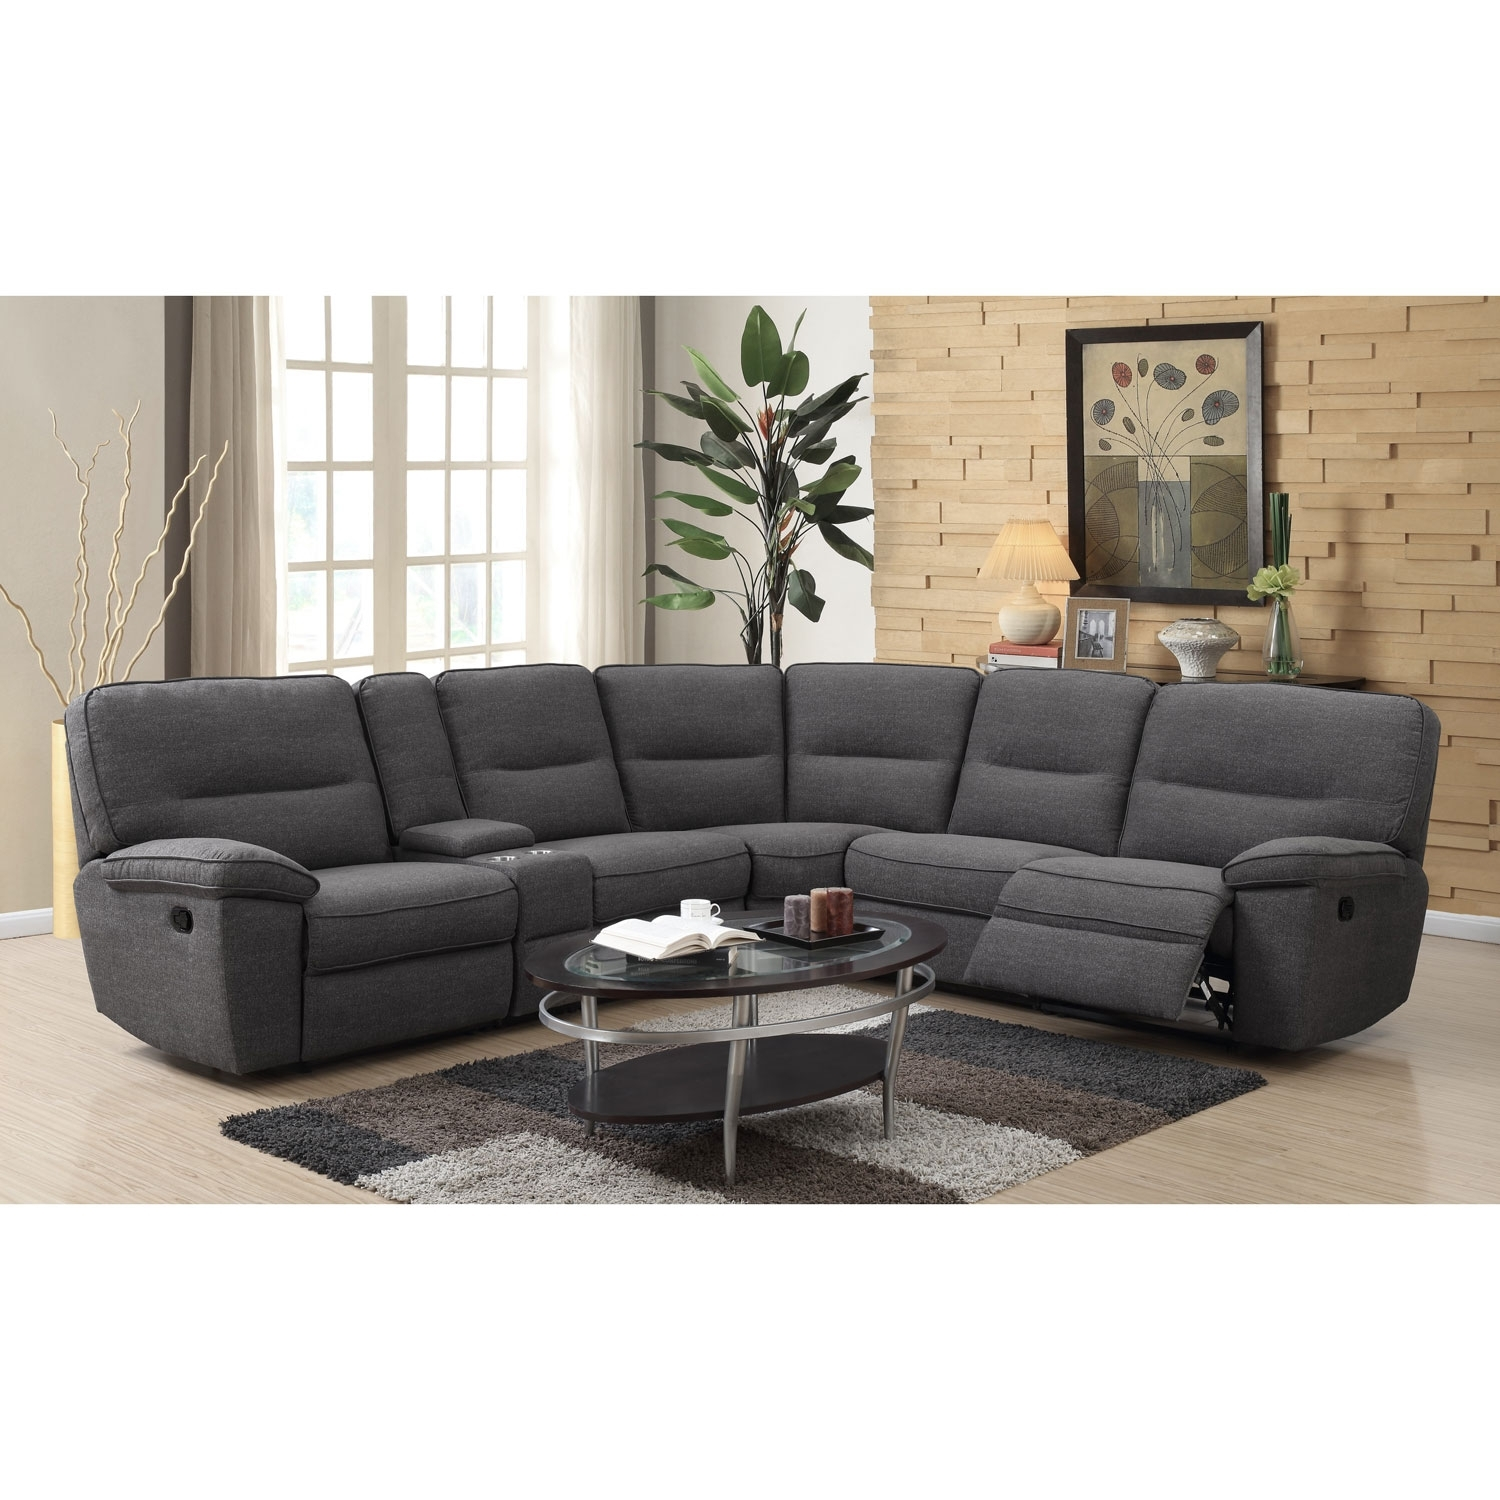 Emerald Home Furnishings Emerald Home Alberta 6 Piece Sectional In Norfolk Chocolate 6 Piece Sectionals (Photo 4 of 30)